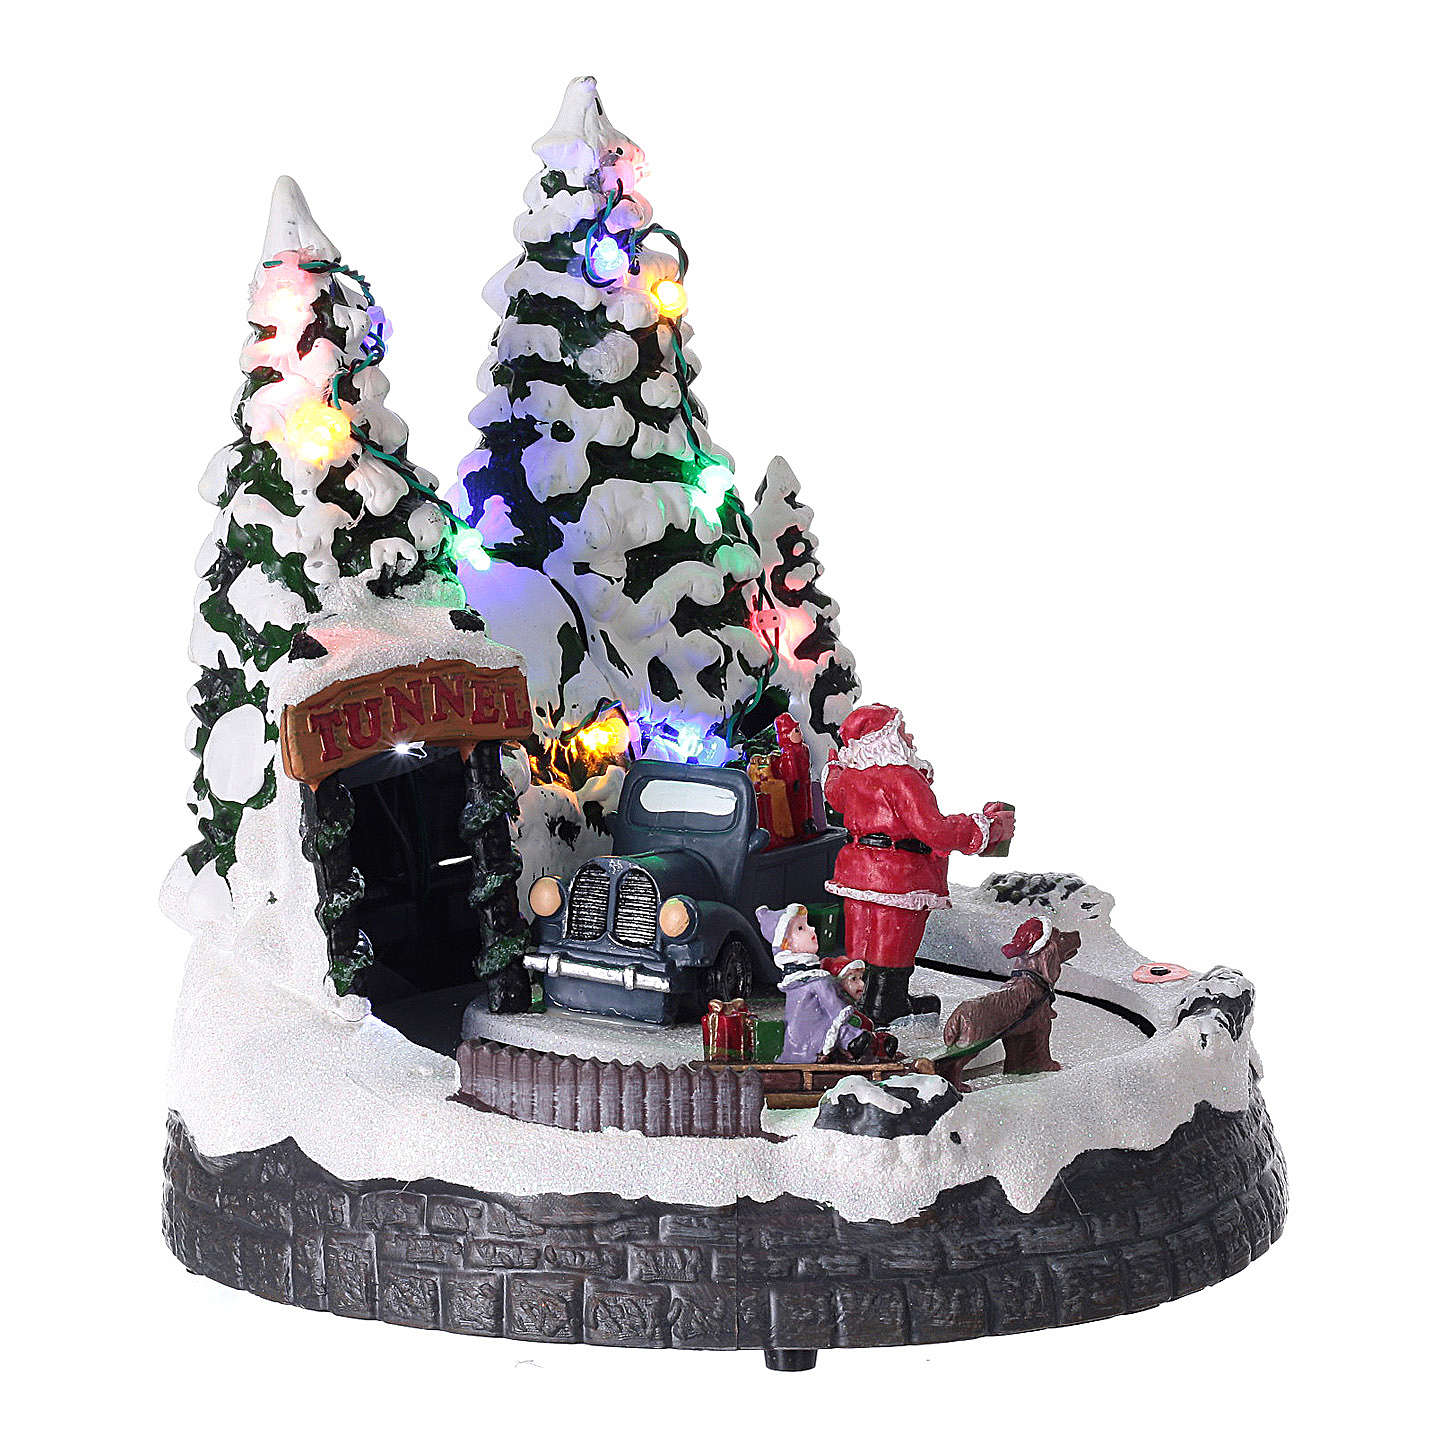 Santa Claus Christmas village children on sled lighted music 20x20x15 cm 3